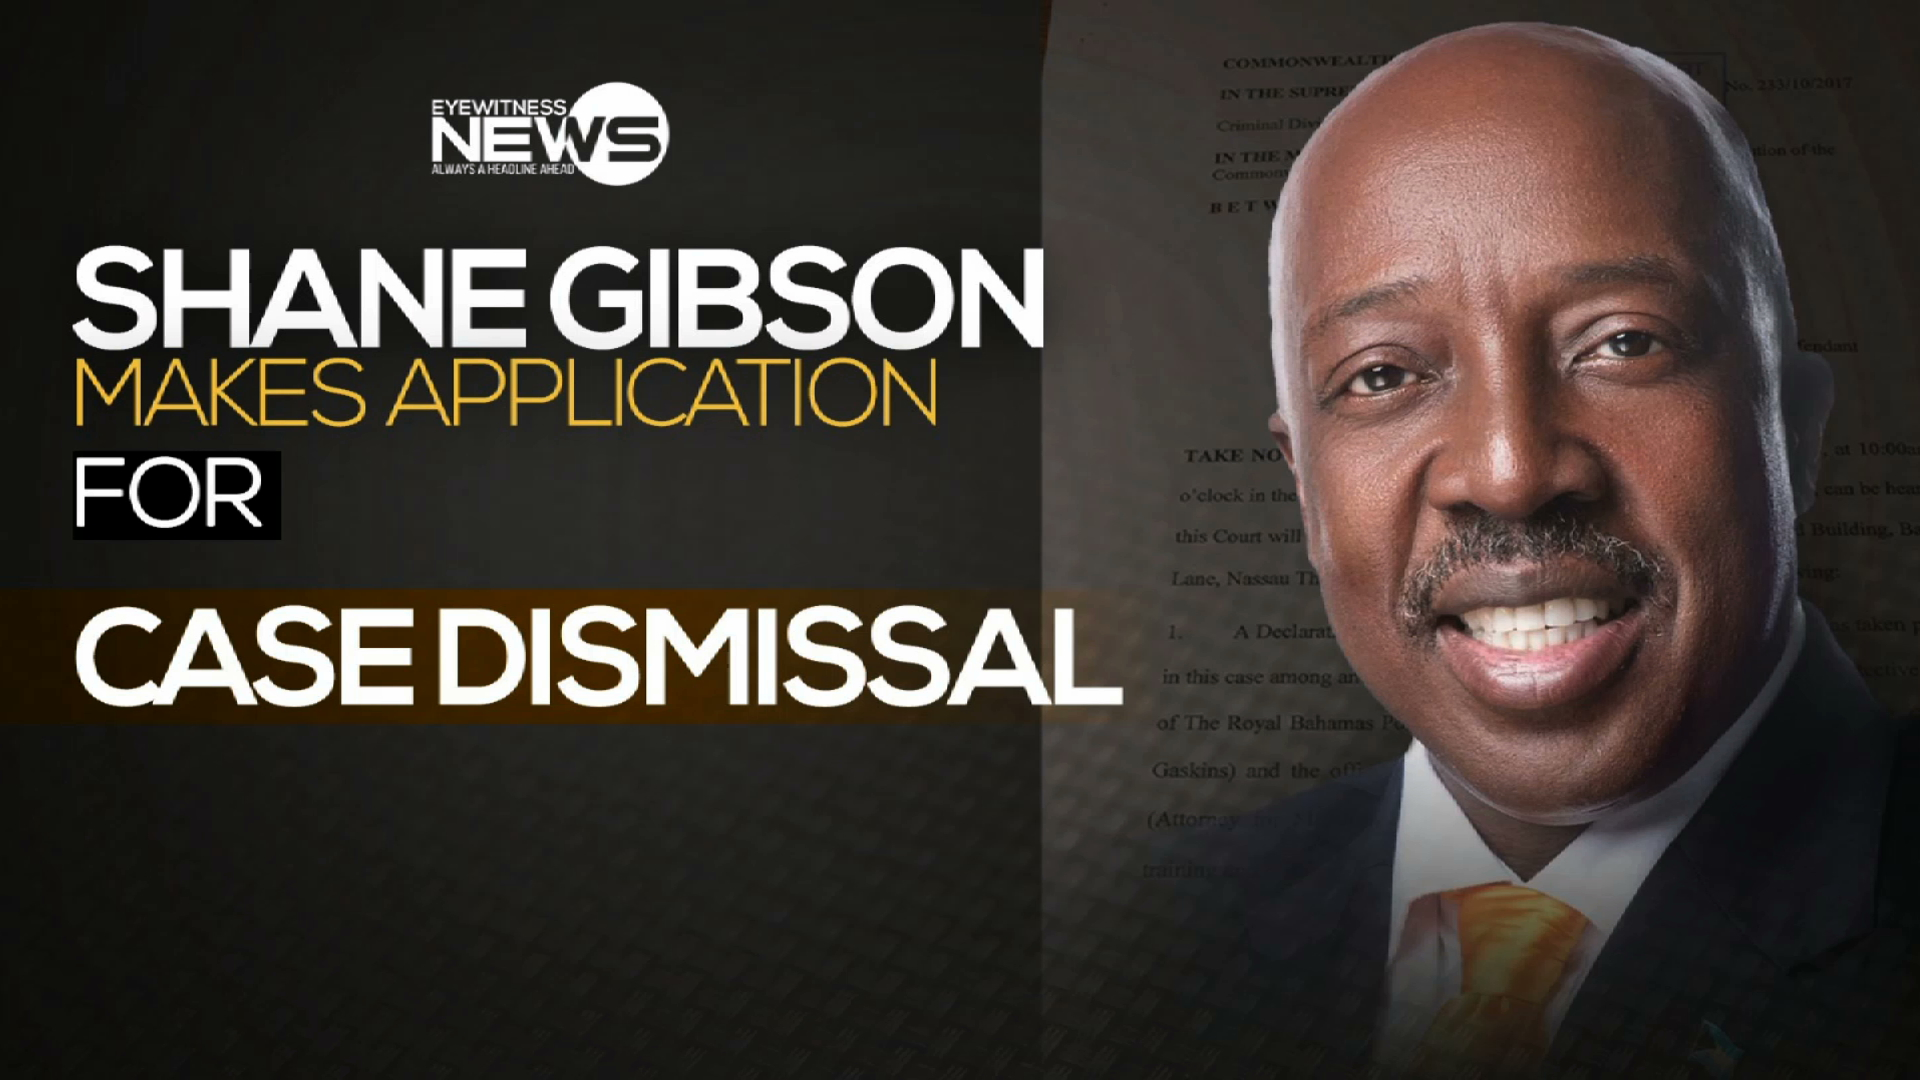 Gibson applies for court case dismissal